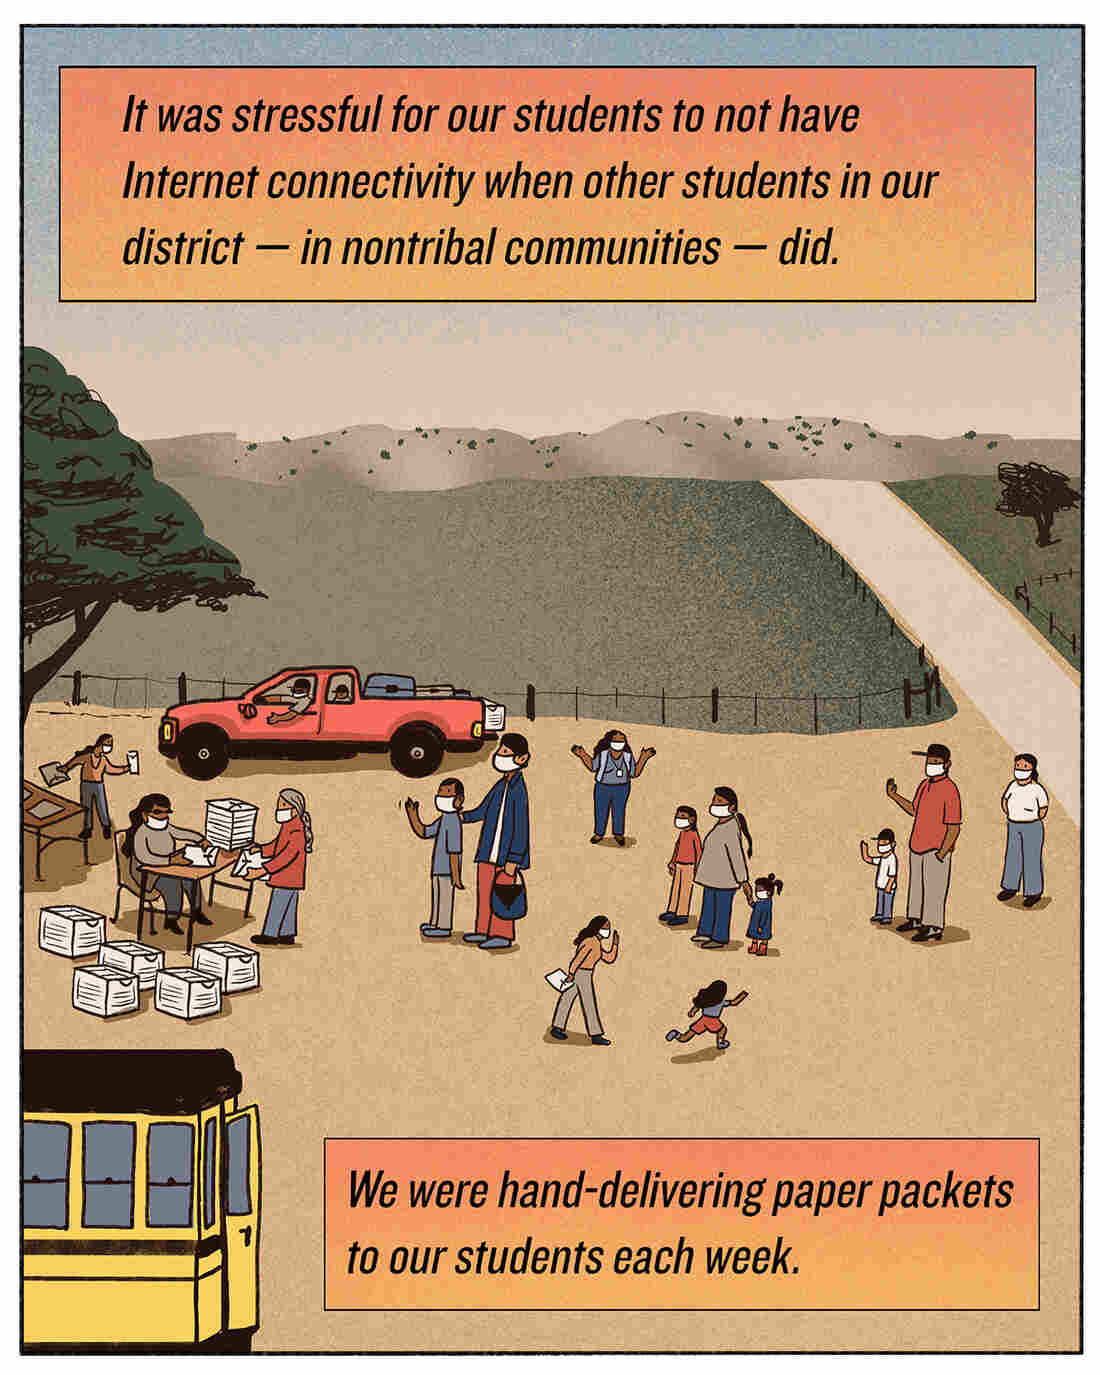 It was stressful for our students not to have Internet connectivity when other students in our district — in nontribal communities — did. We were hand-delivering paper packets to our students each week.